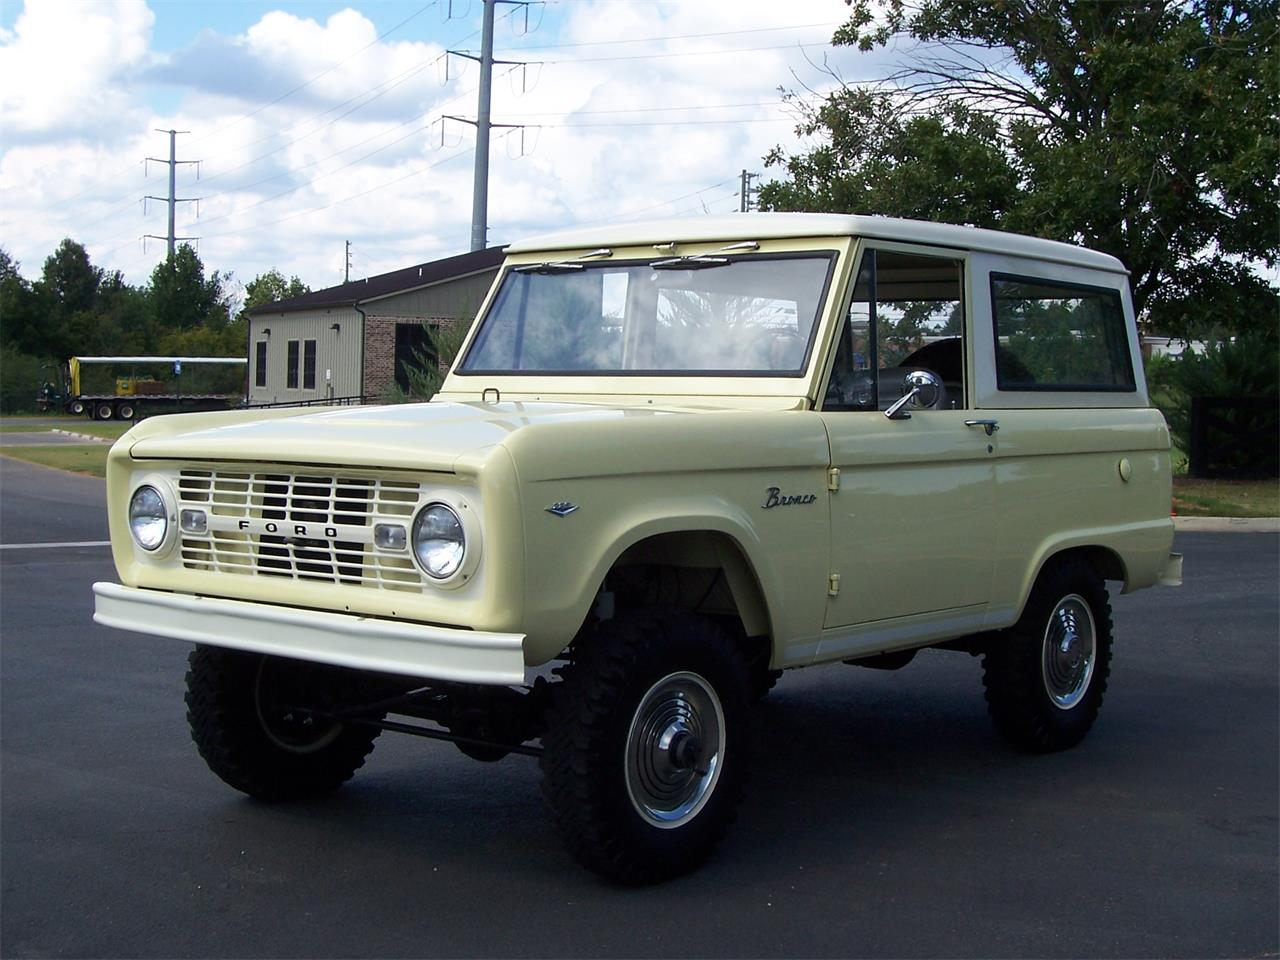 1966 Ford Bronco for sale in Alpharetta, GA – photo 6